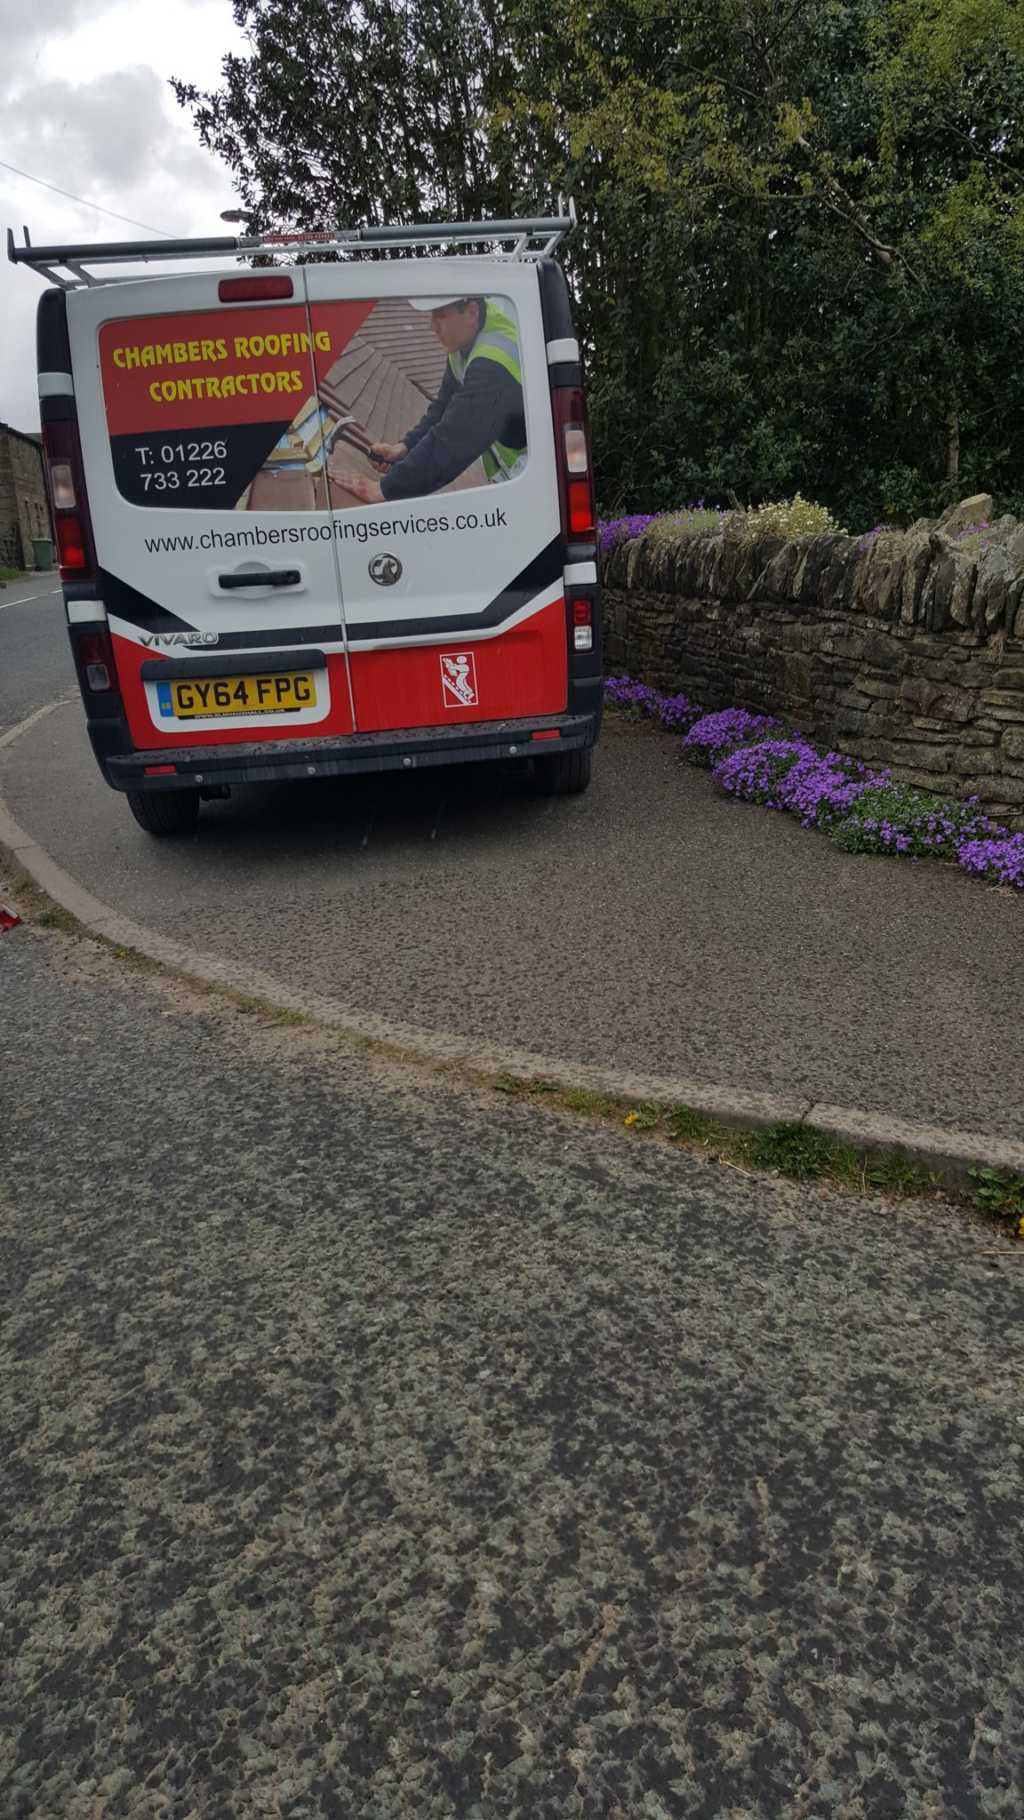 GY64 FPG displaying Inconsiderate Parking